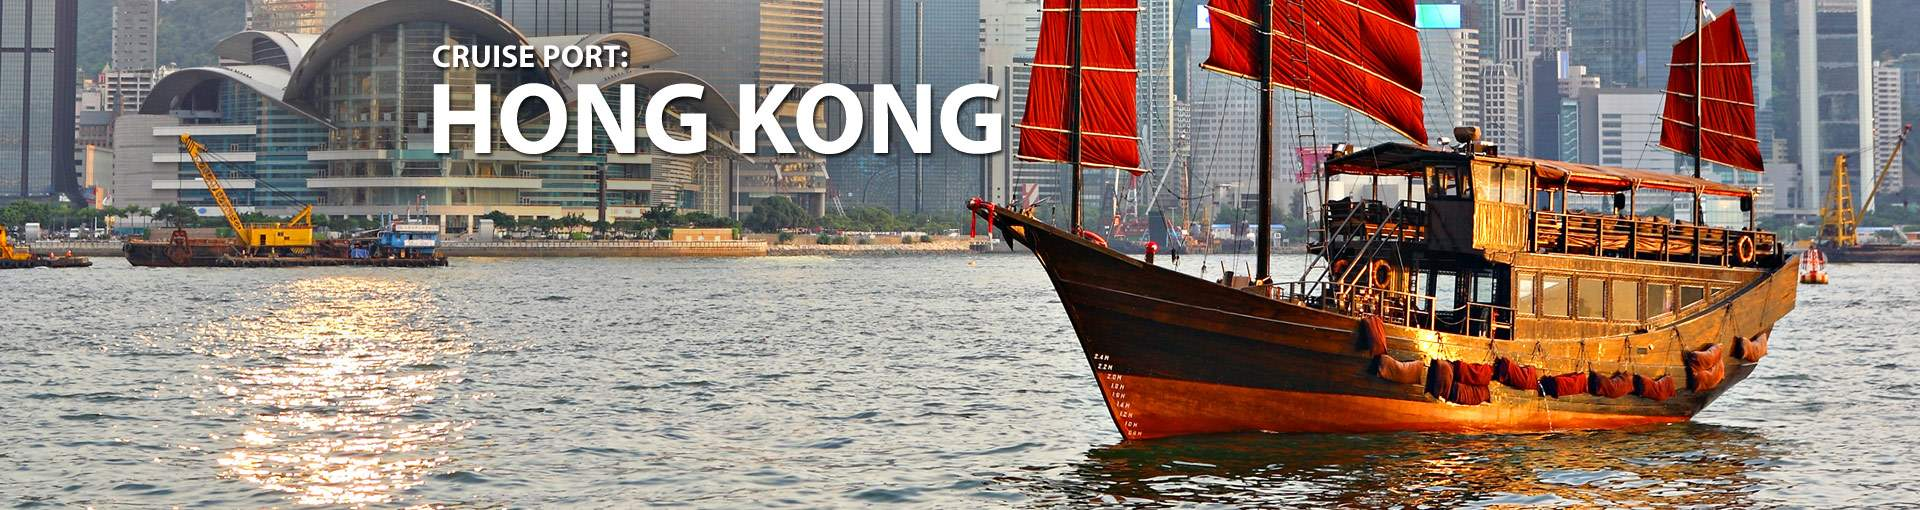 Cruises from Hong Kong, China